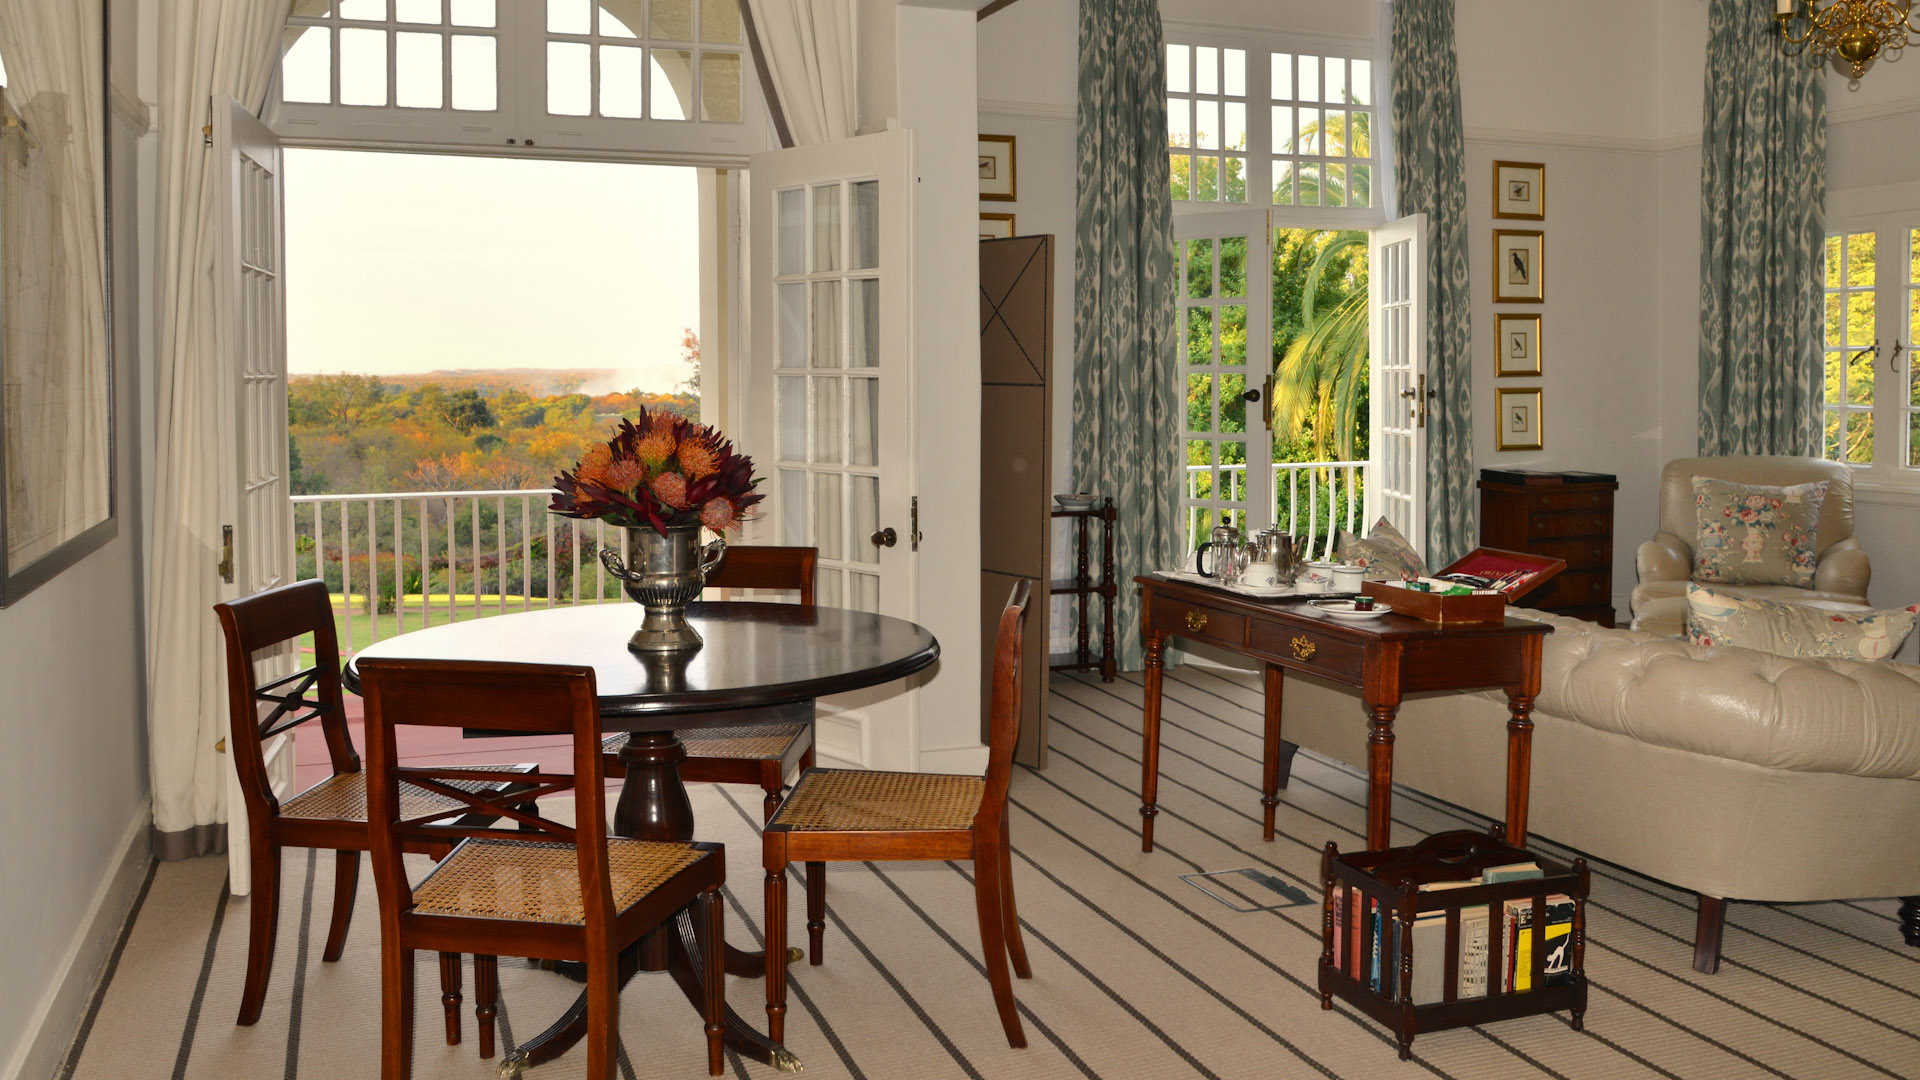 New dining room suites in harare zimbabwe